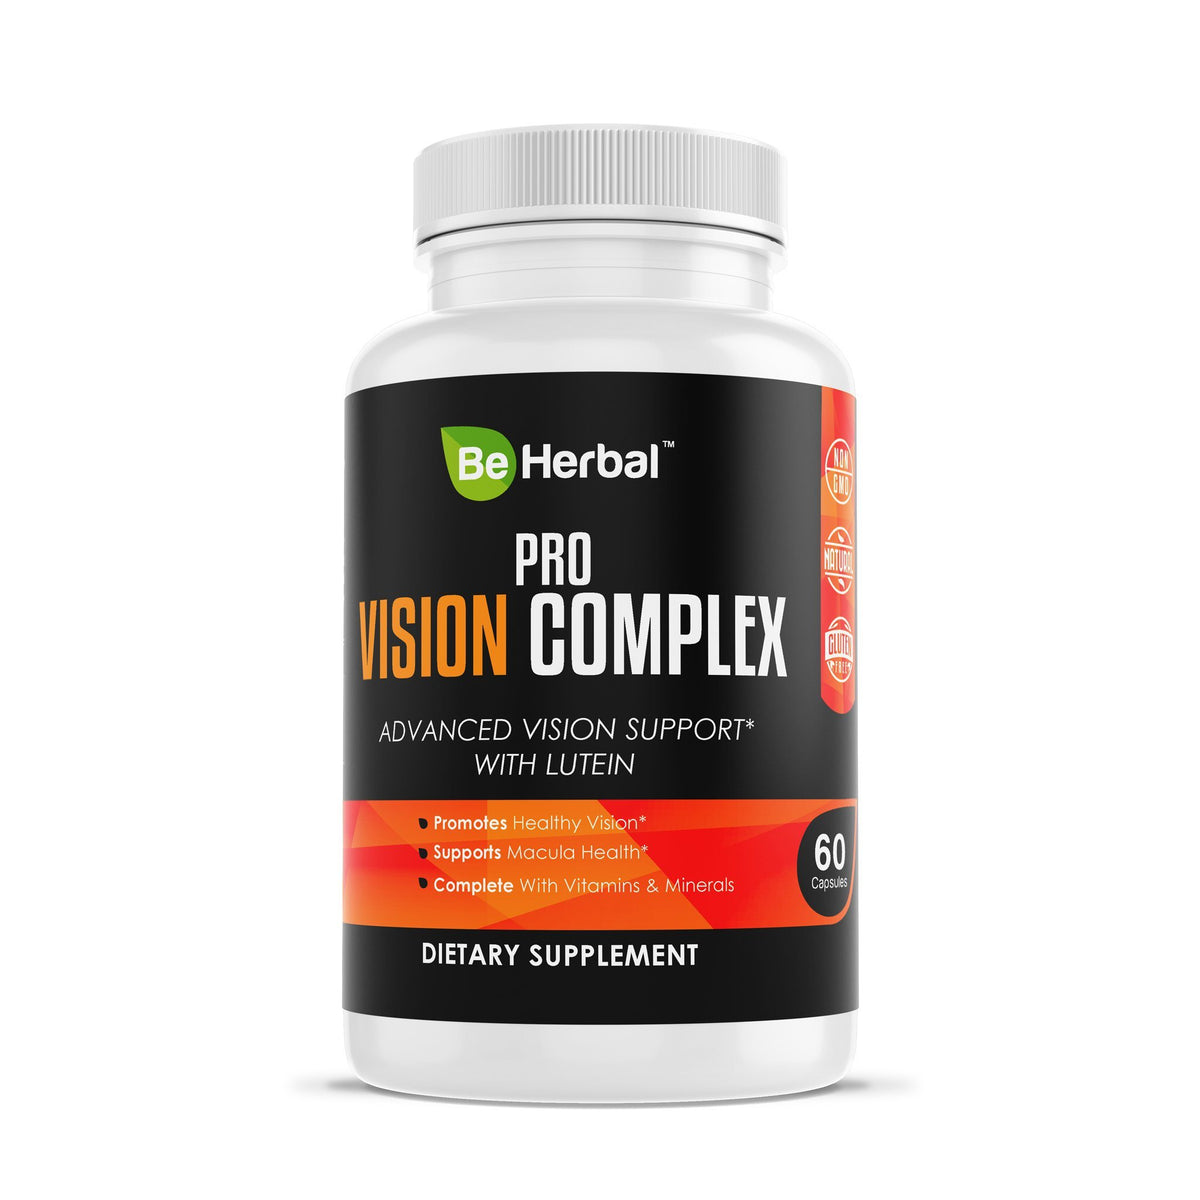 Pro Vision Complex - Advanced Vision Support with Lutein Herbal Supplements Be Herbal®